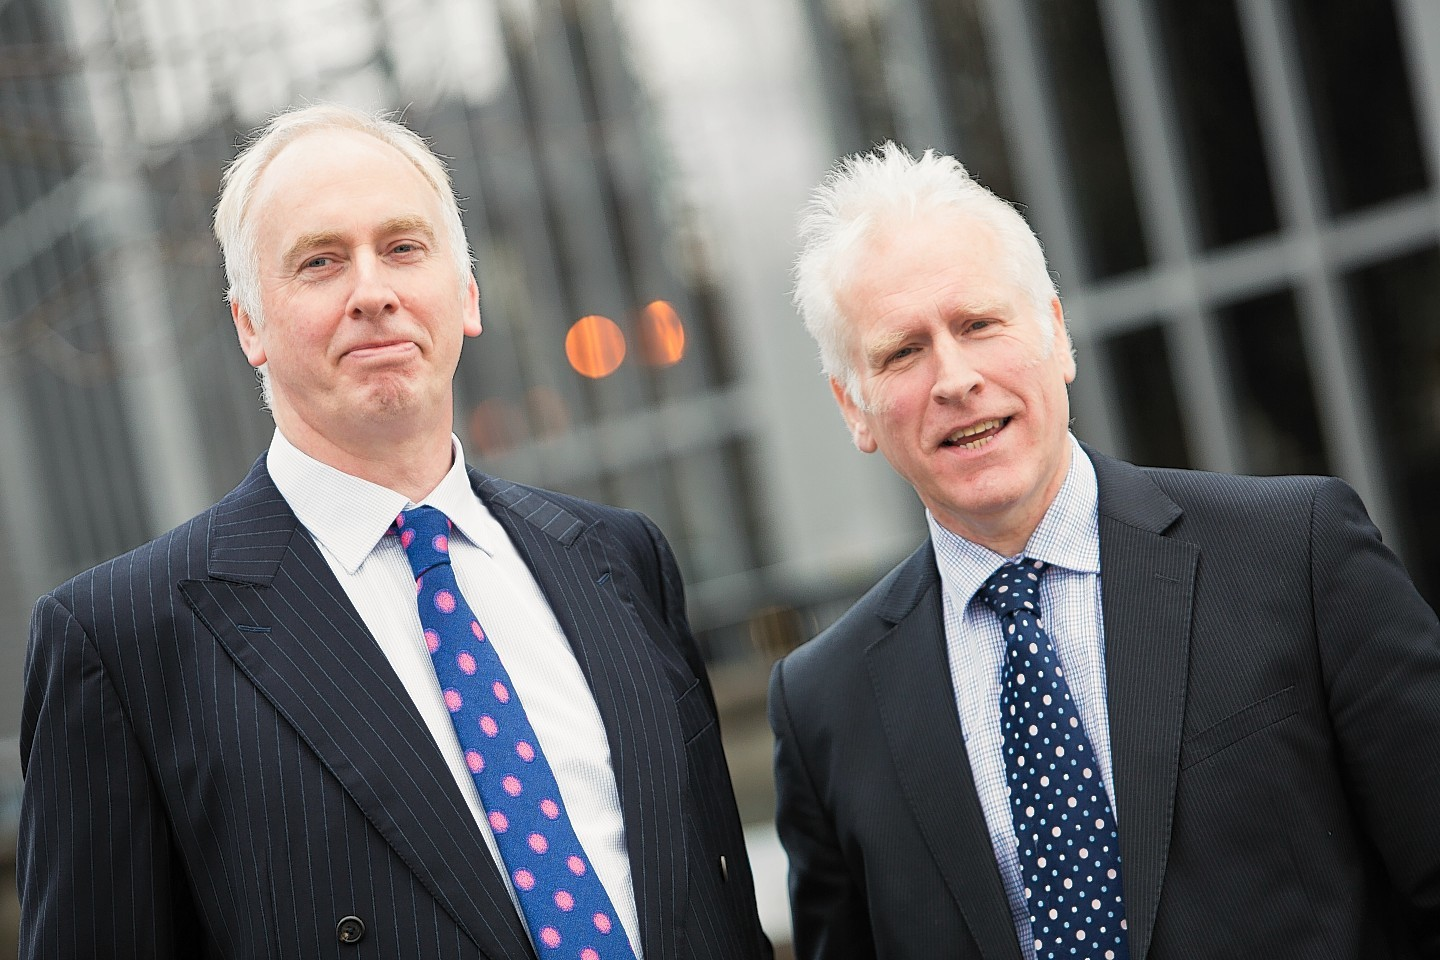 Magnus Nicolson (left) and Peter Cook